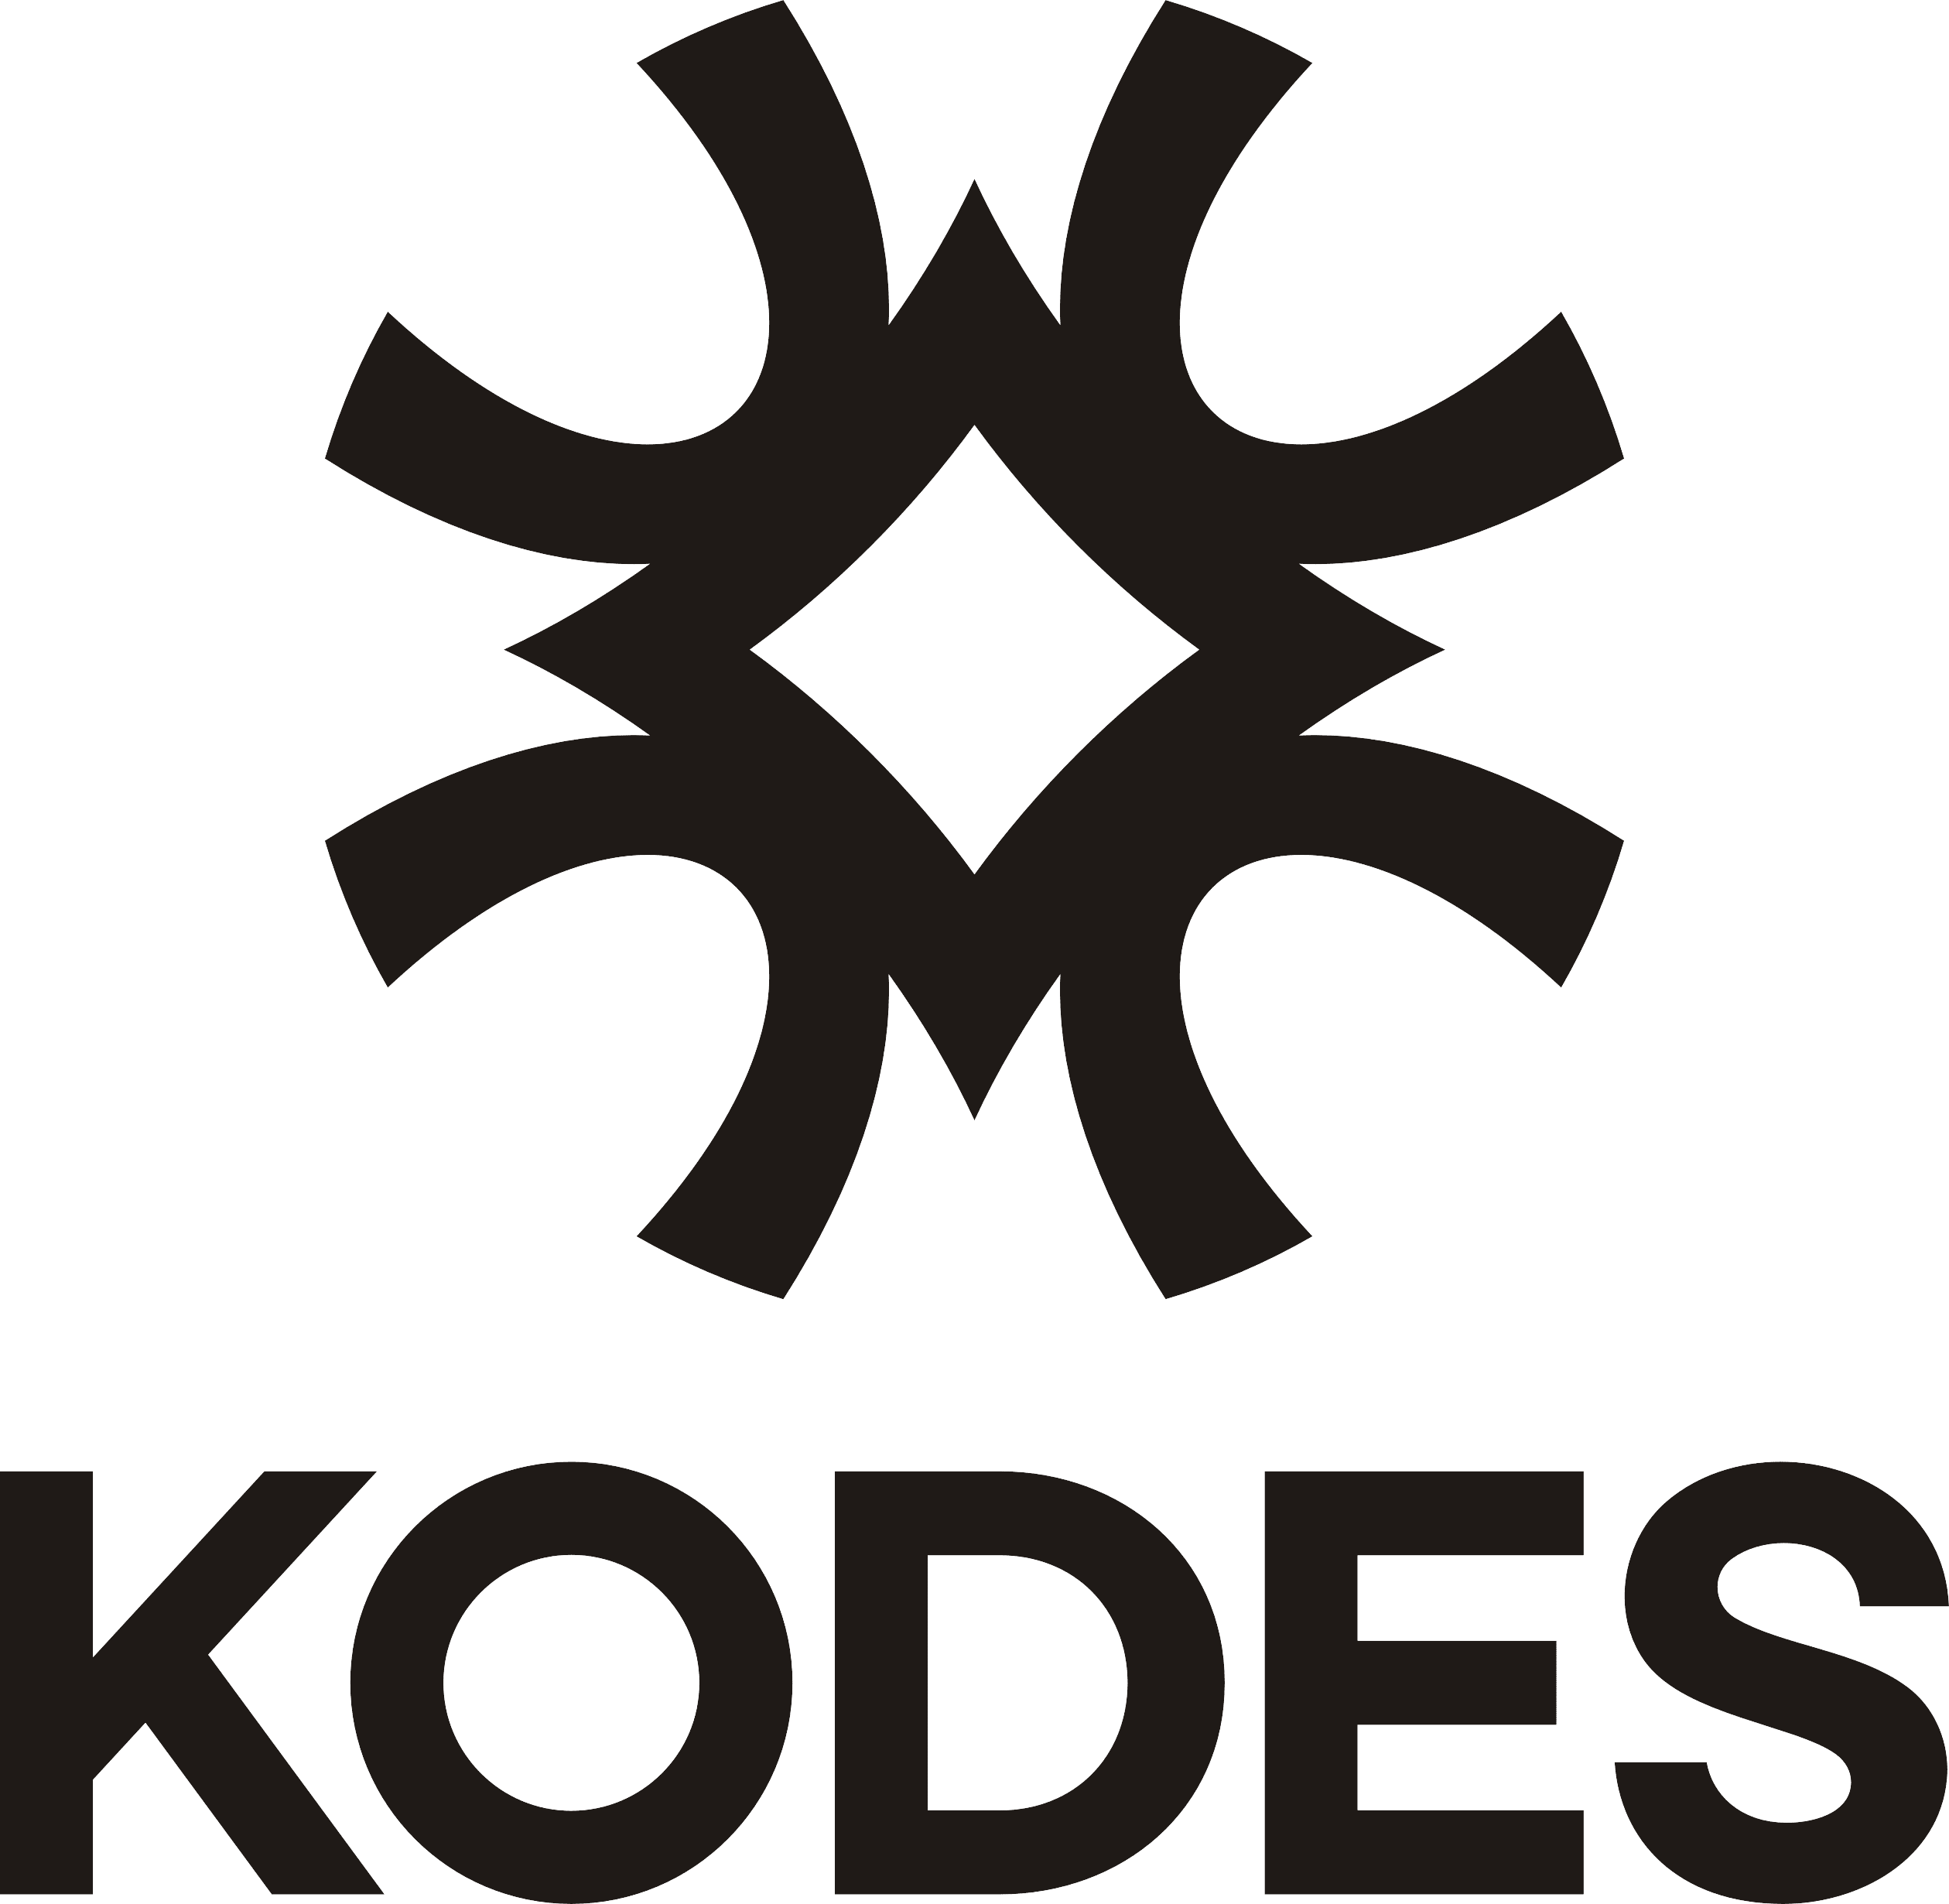 Guangzhou Kodes Leather Limited